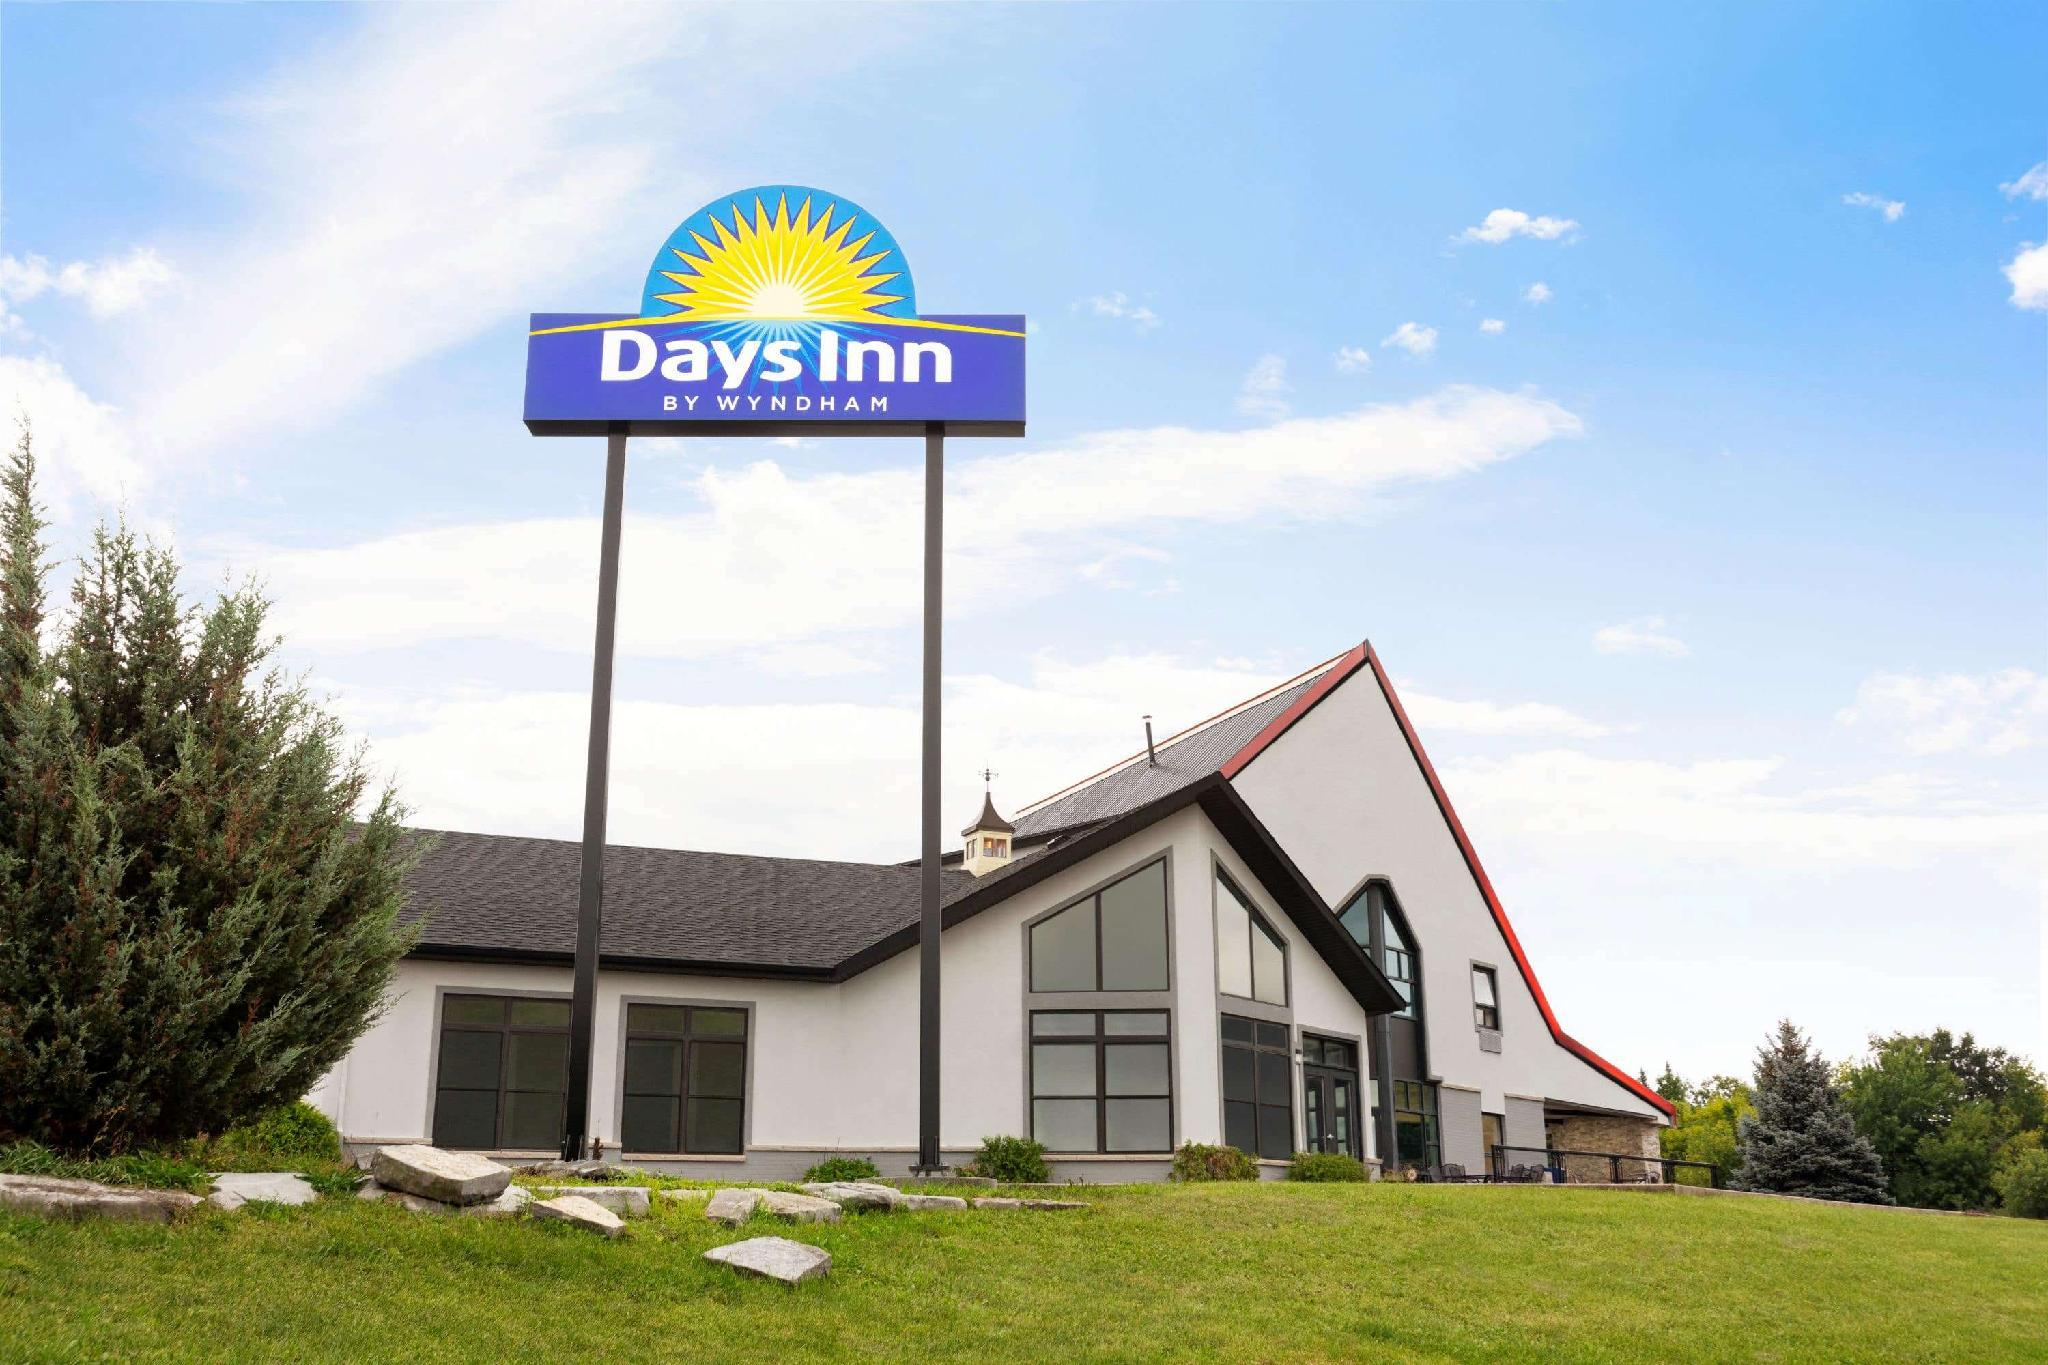 Days Inn by Wyndham Kingston, Frontenac